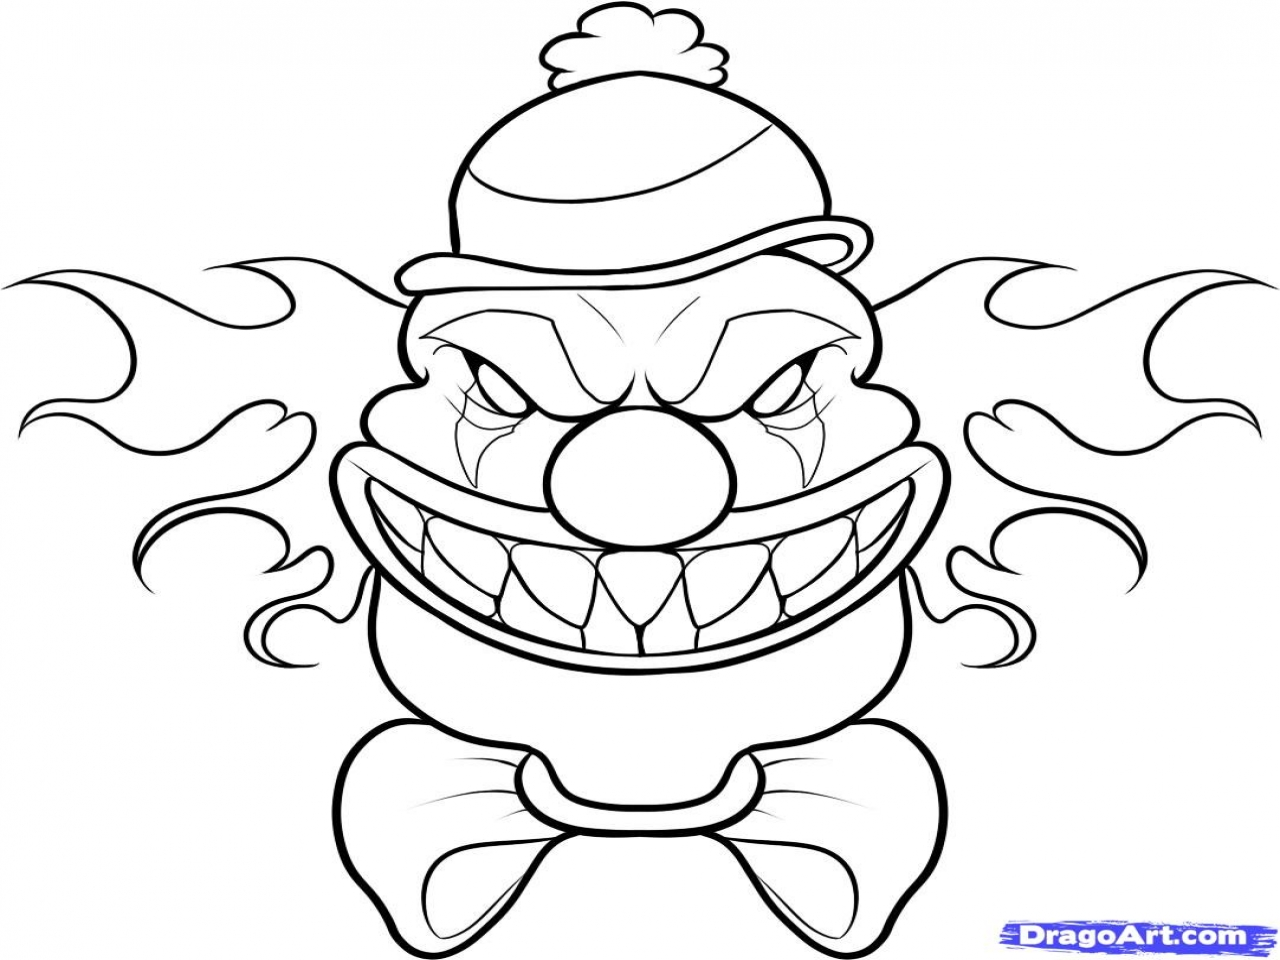 1280x960 Scary Halloween Coloring Pages Clown Face Kids